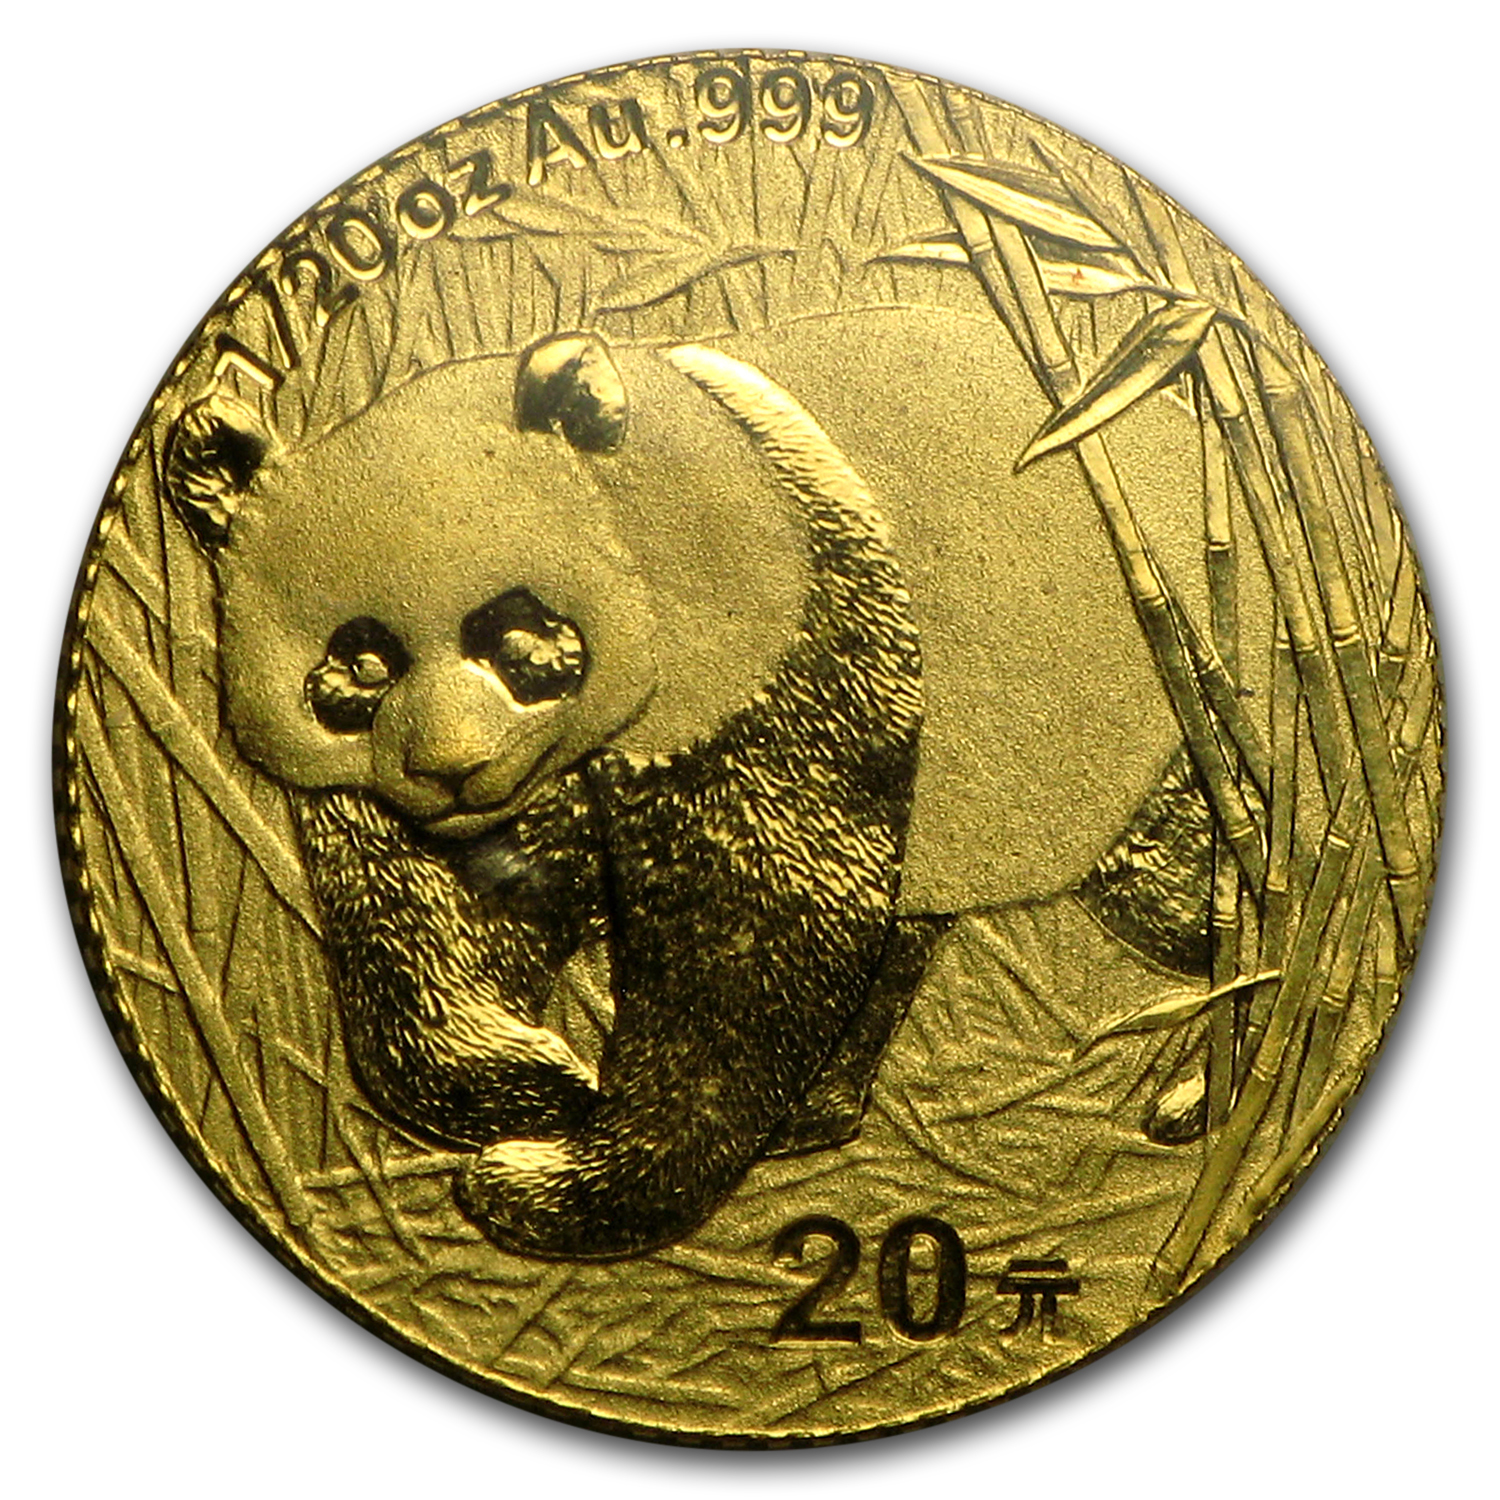 2001 China 1/20 oz Gold Panda BU (Sealed)